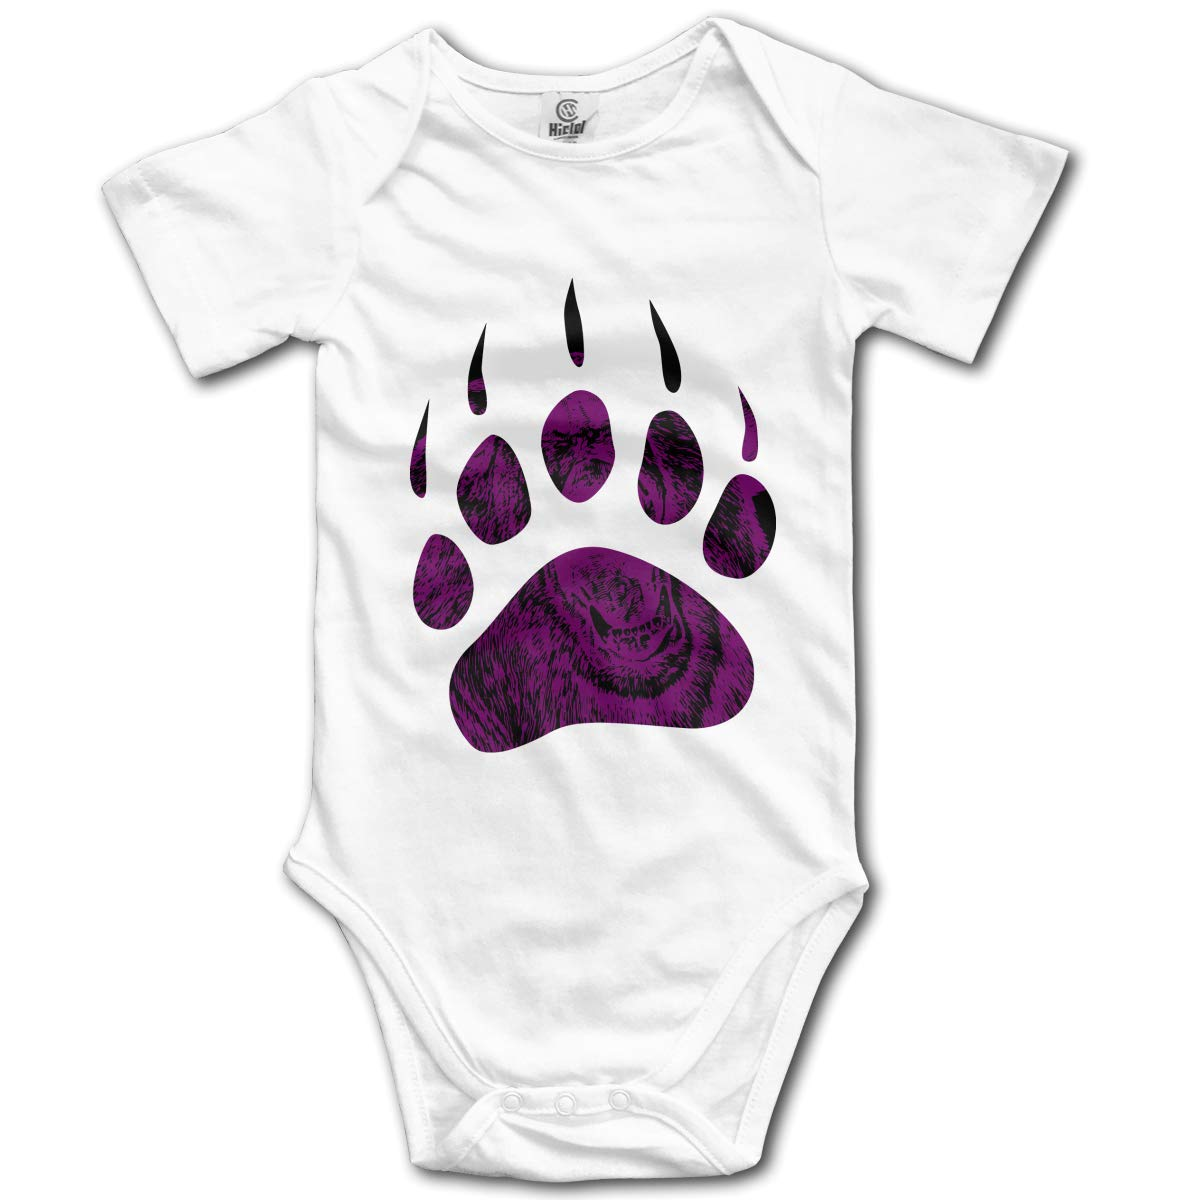 Bear Paw Baby Unisex Short Sleeve One-Piece Coverall 0-24 Months